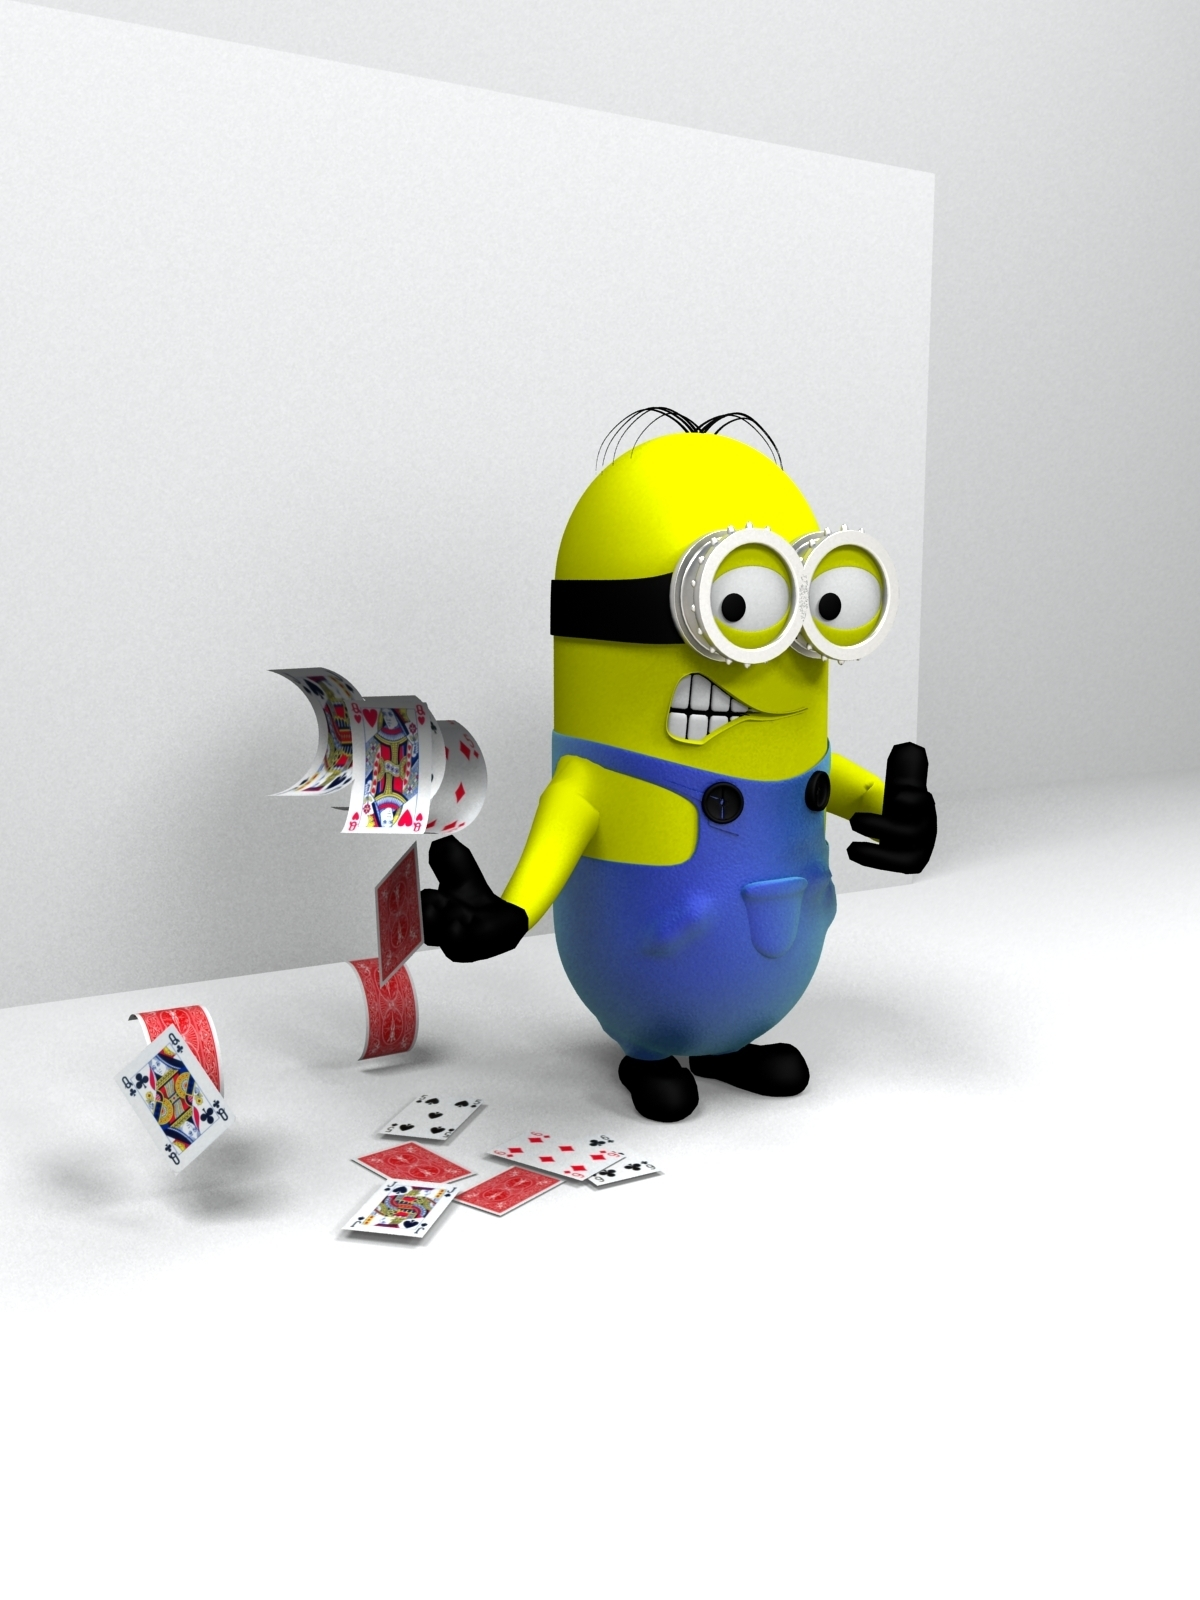 Minion Clip Art http://www.fanpop.com/clubs/despicable-me/images/20120452/title/magic-minion-fanart